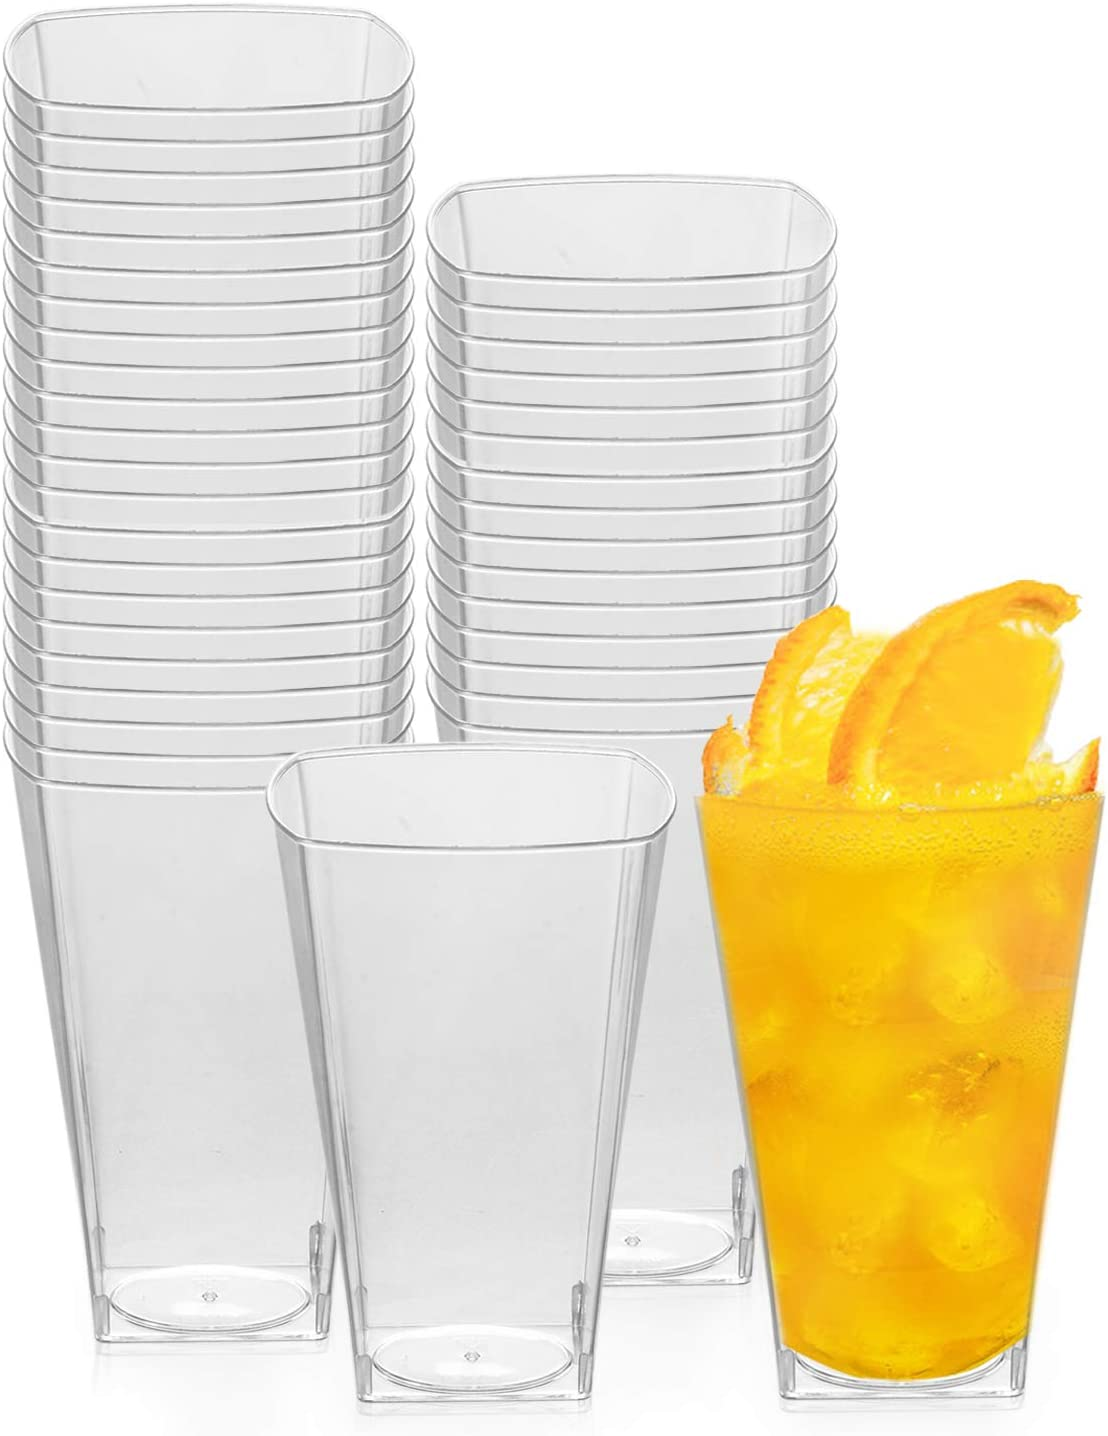 Clear Plastic Cups Disposable Party Max 83% OFF 10oz Hard - 336 Outstanding